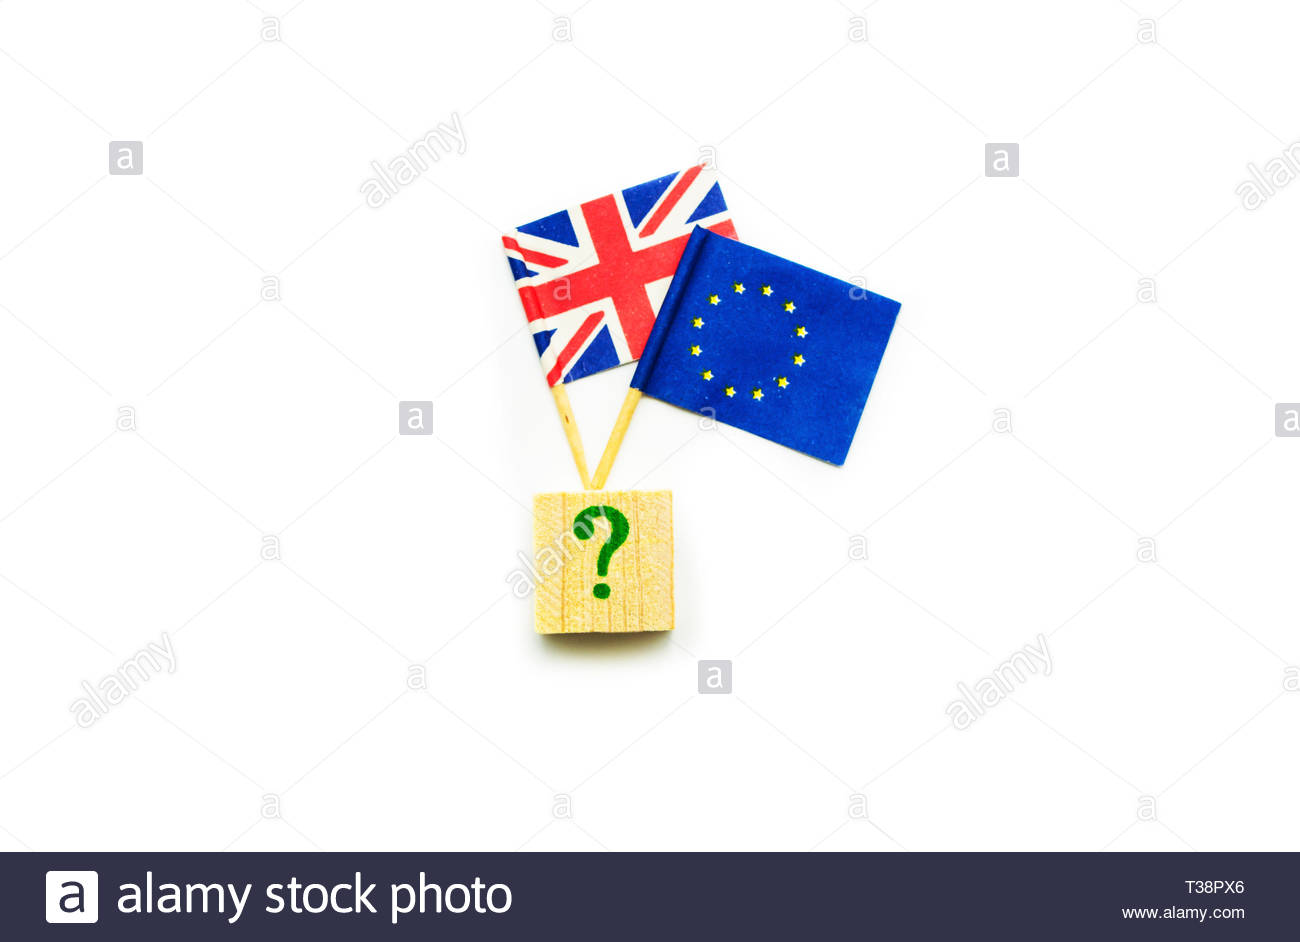 Brexit. Flag of United Kingdom and European Union under question mark. Concept of decision, difficulties, uncertainty. - Stock Image